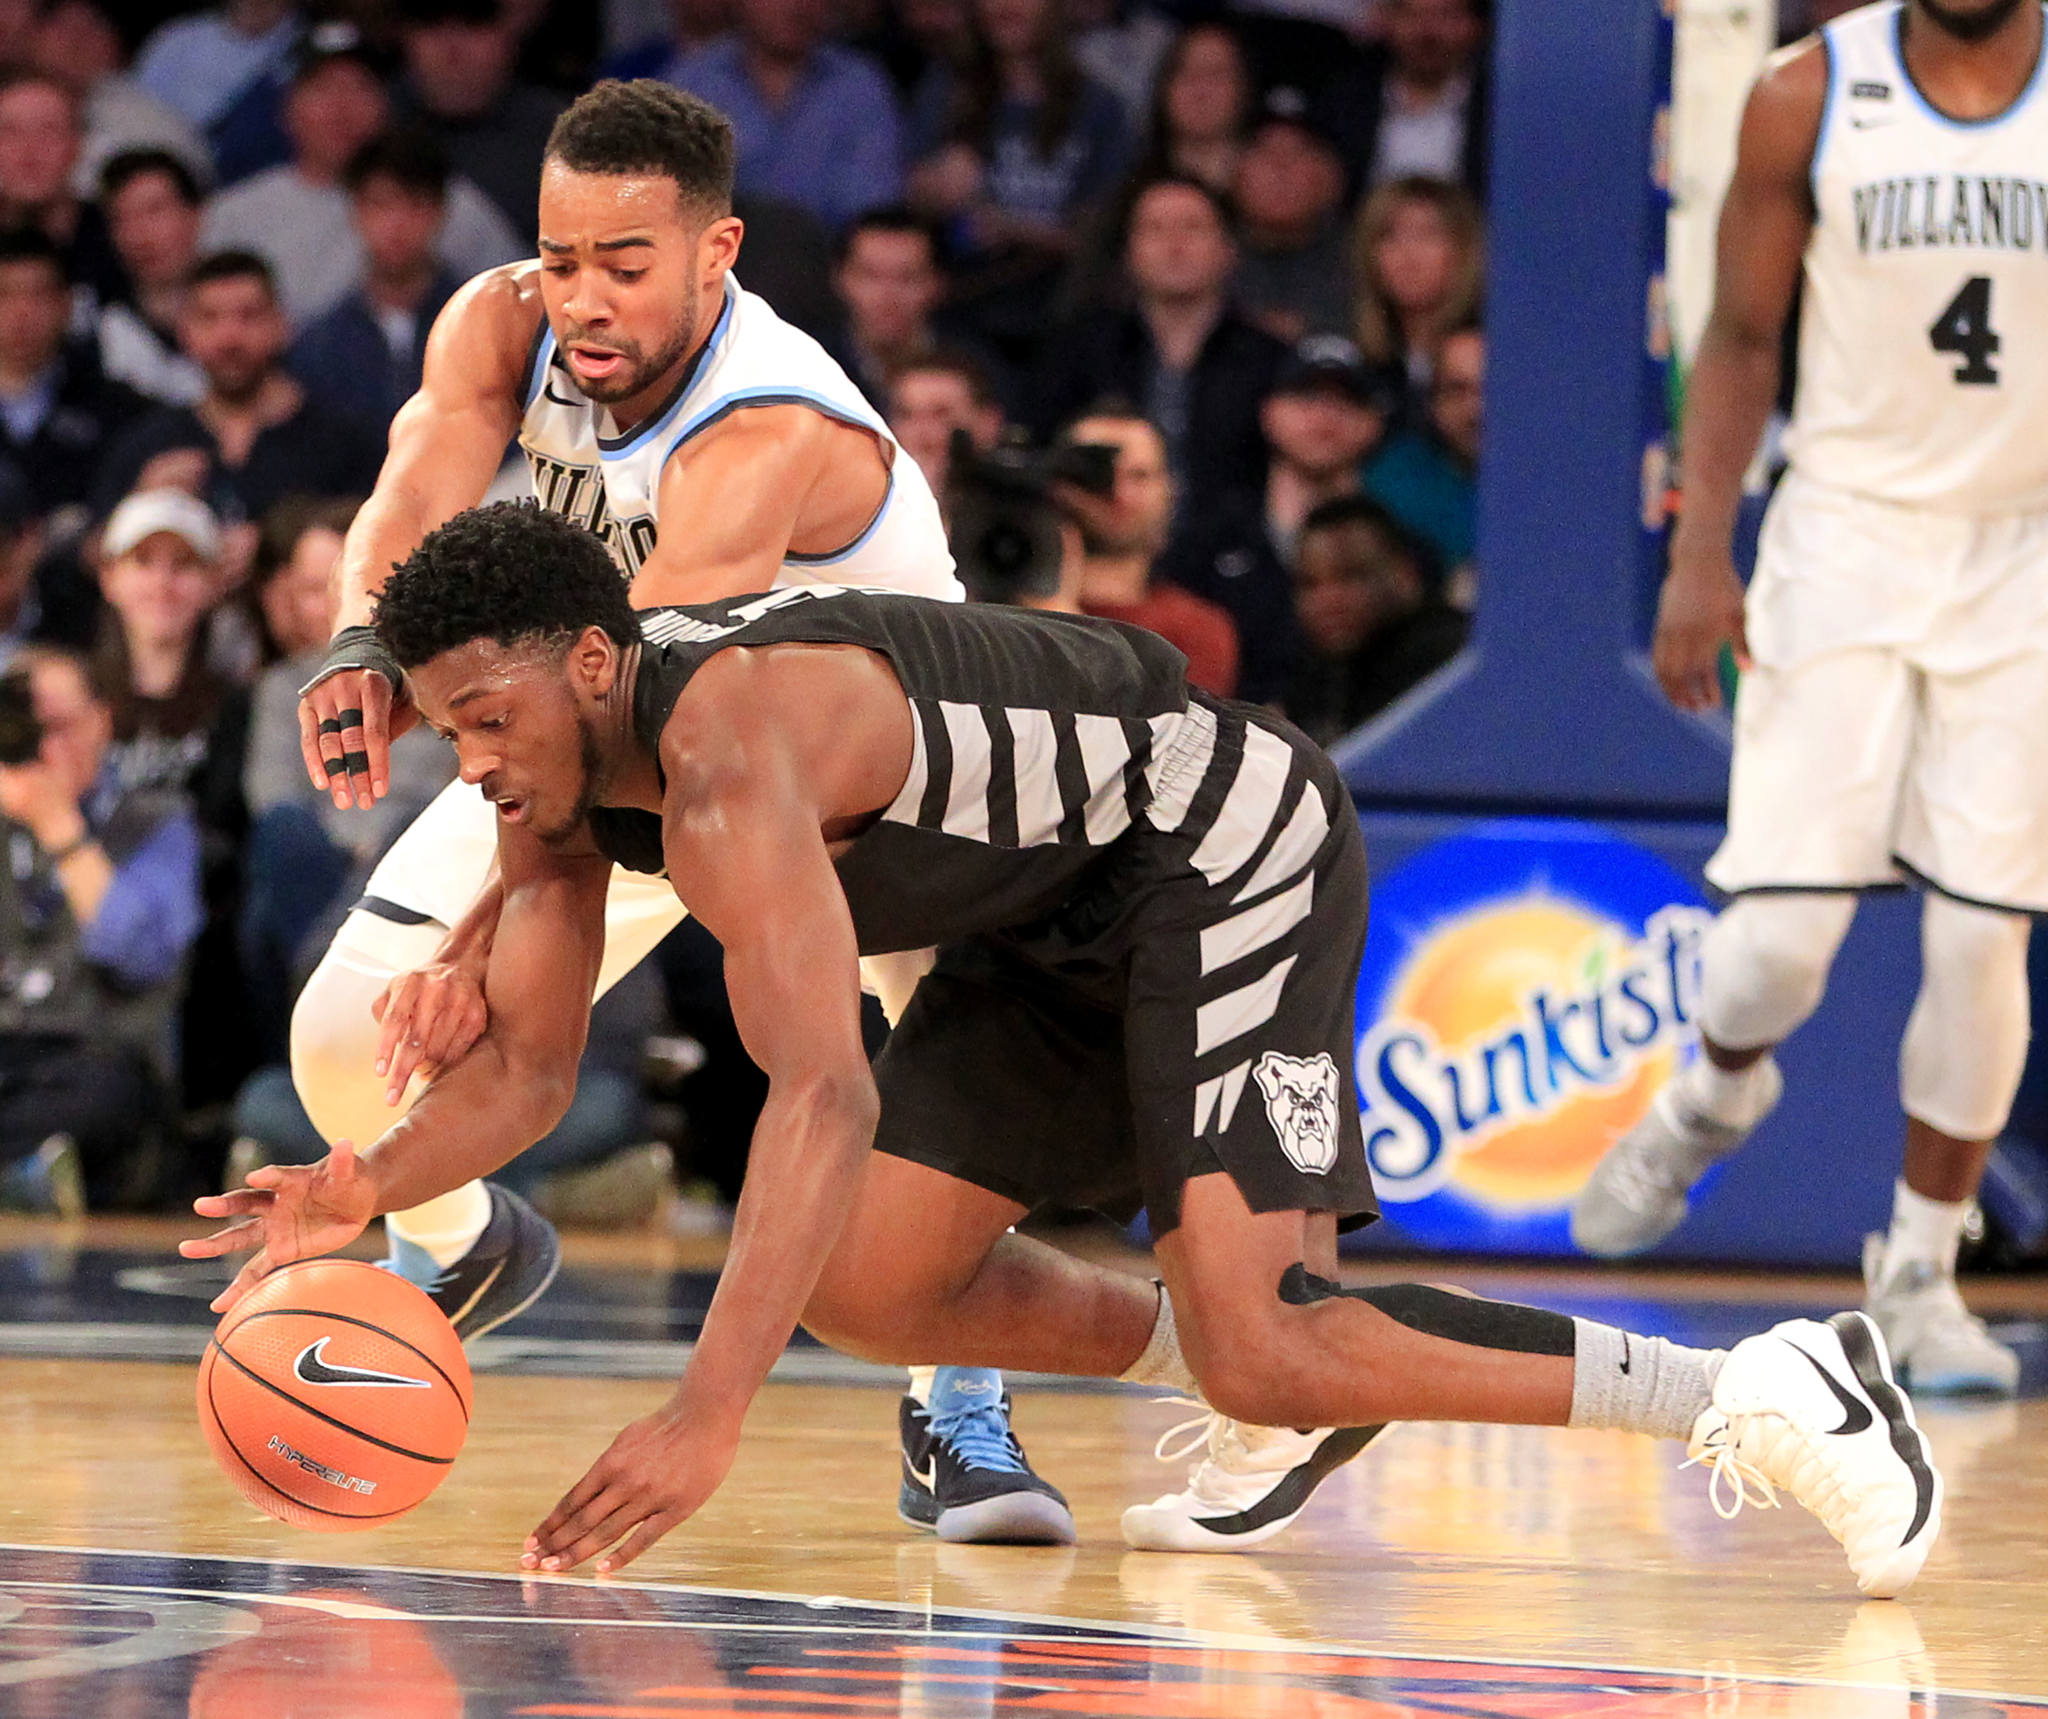 Phil Booth, top, of Villanova and Kamar Baldwin of Butler scramble For a loose ball during the 2nd half in the Big East Tournament semi-finals at Madison Square Garden on March 9, 2018.